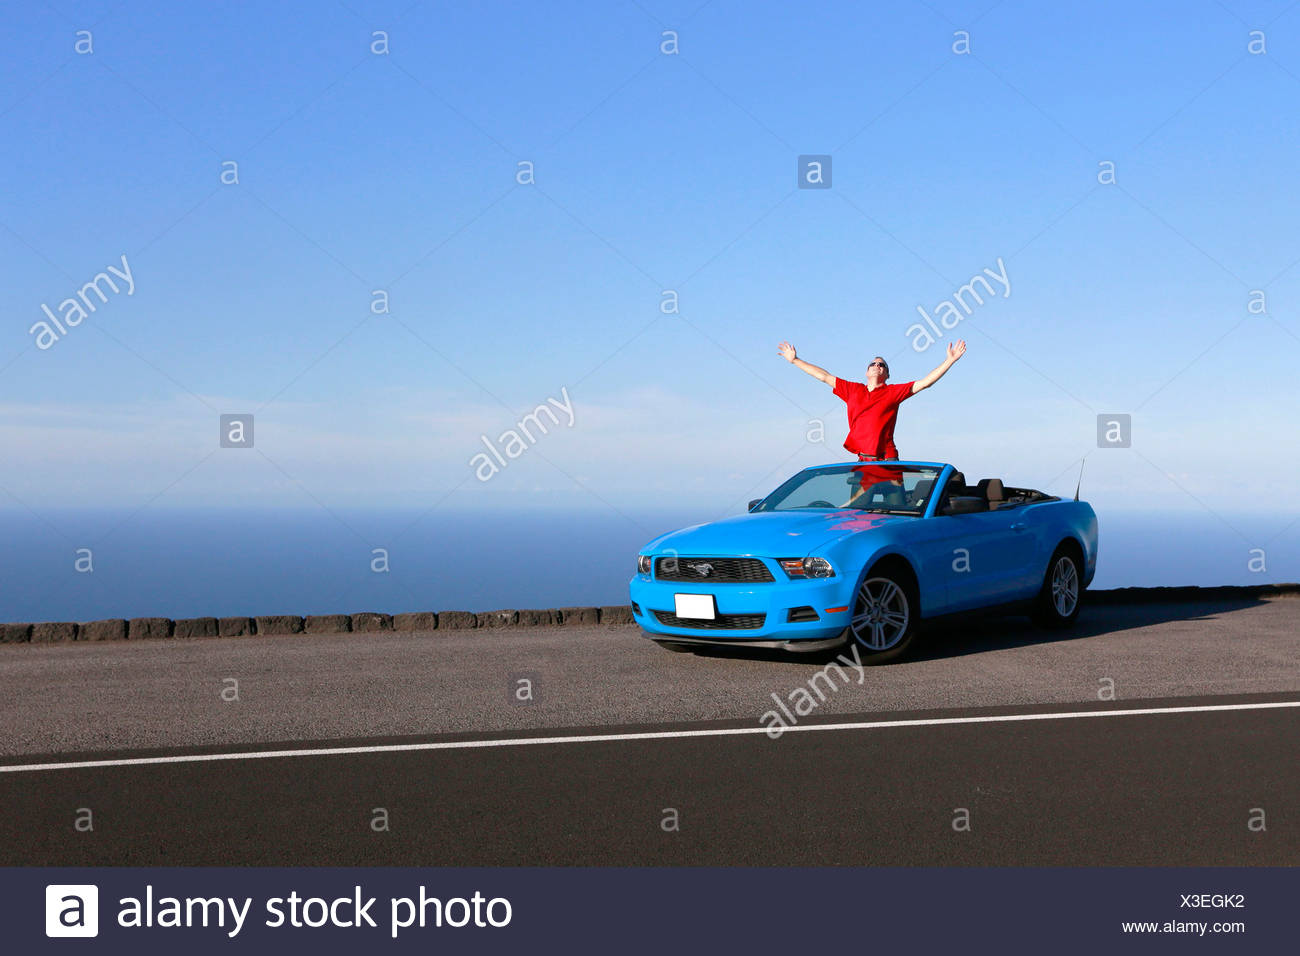 Happy man in a sky-blue Ford Mustang convertible by the sea, Big Island, Hawaii, USA - Stock Image